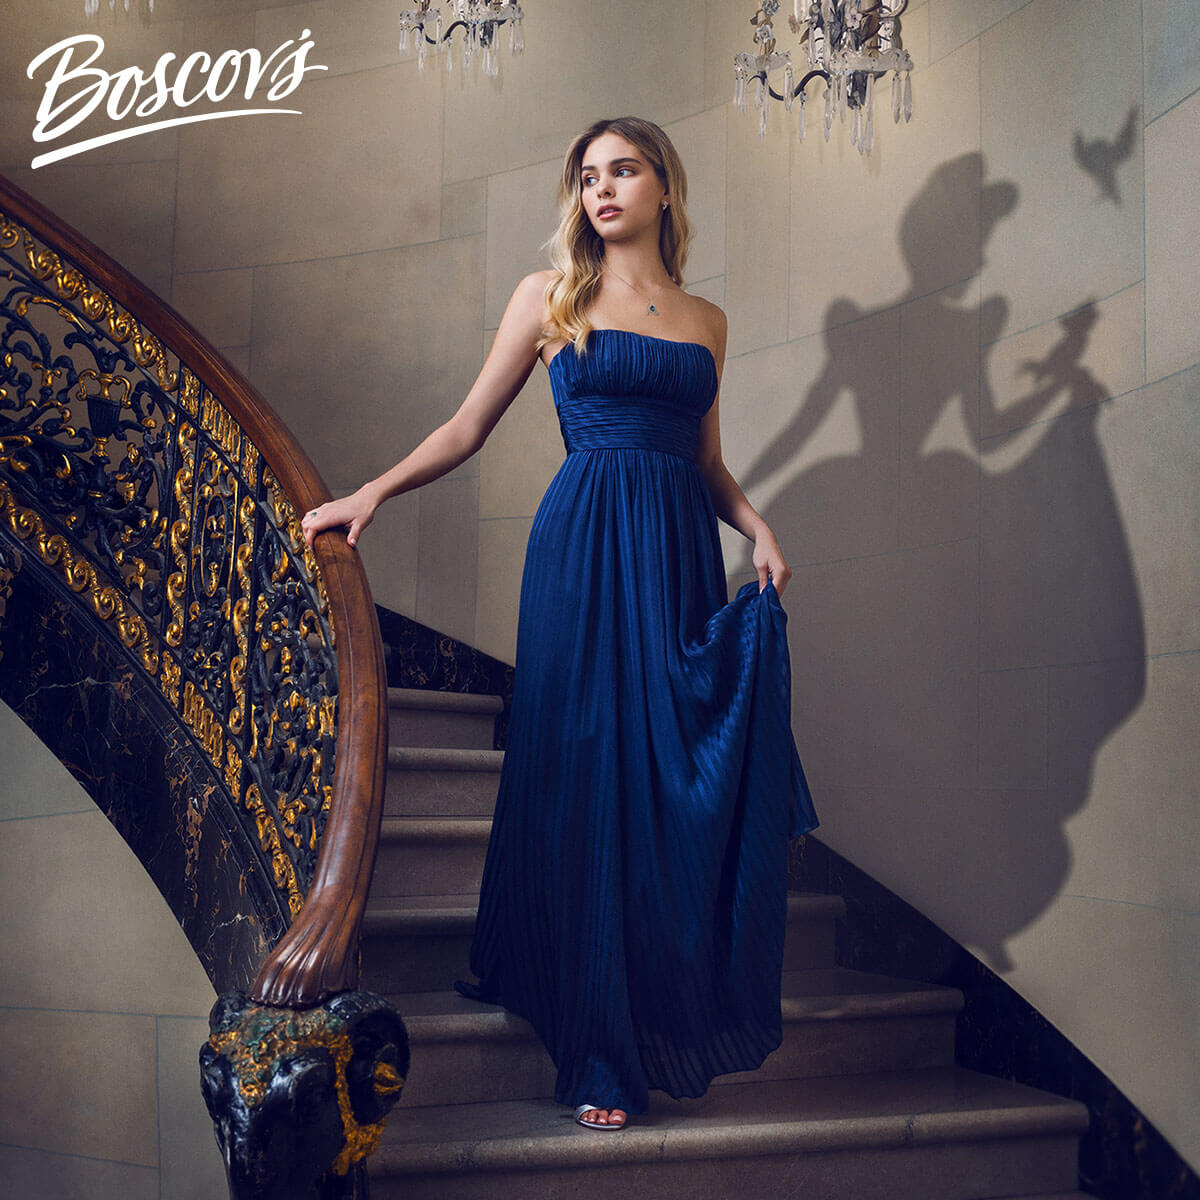 Photo of a woman with a blue necklace and diamond earrings in a blue gown walking down a staircase with the shadow of Cinderella